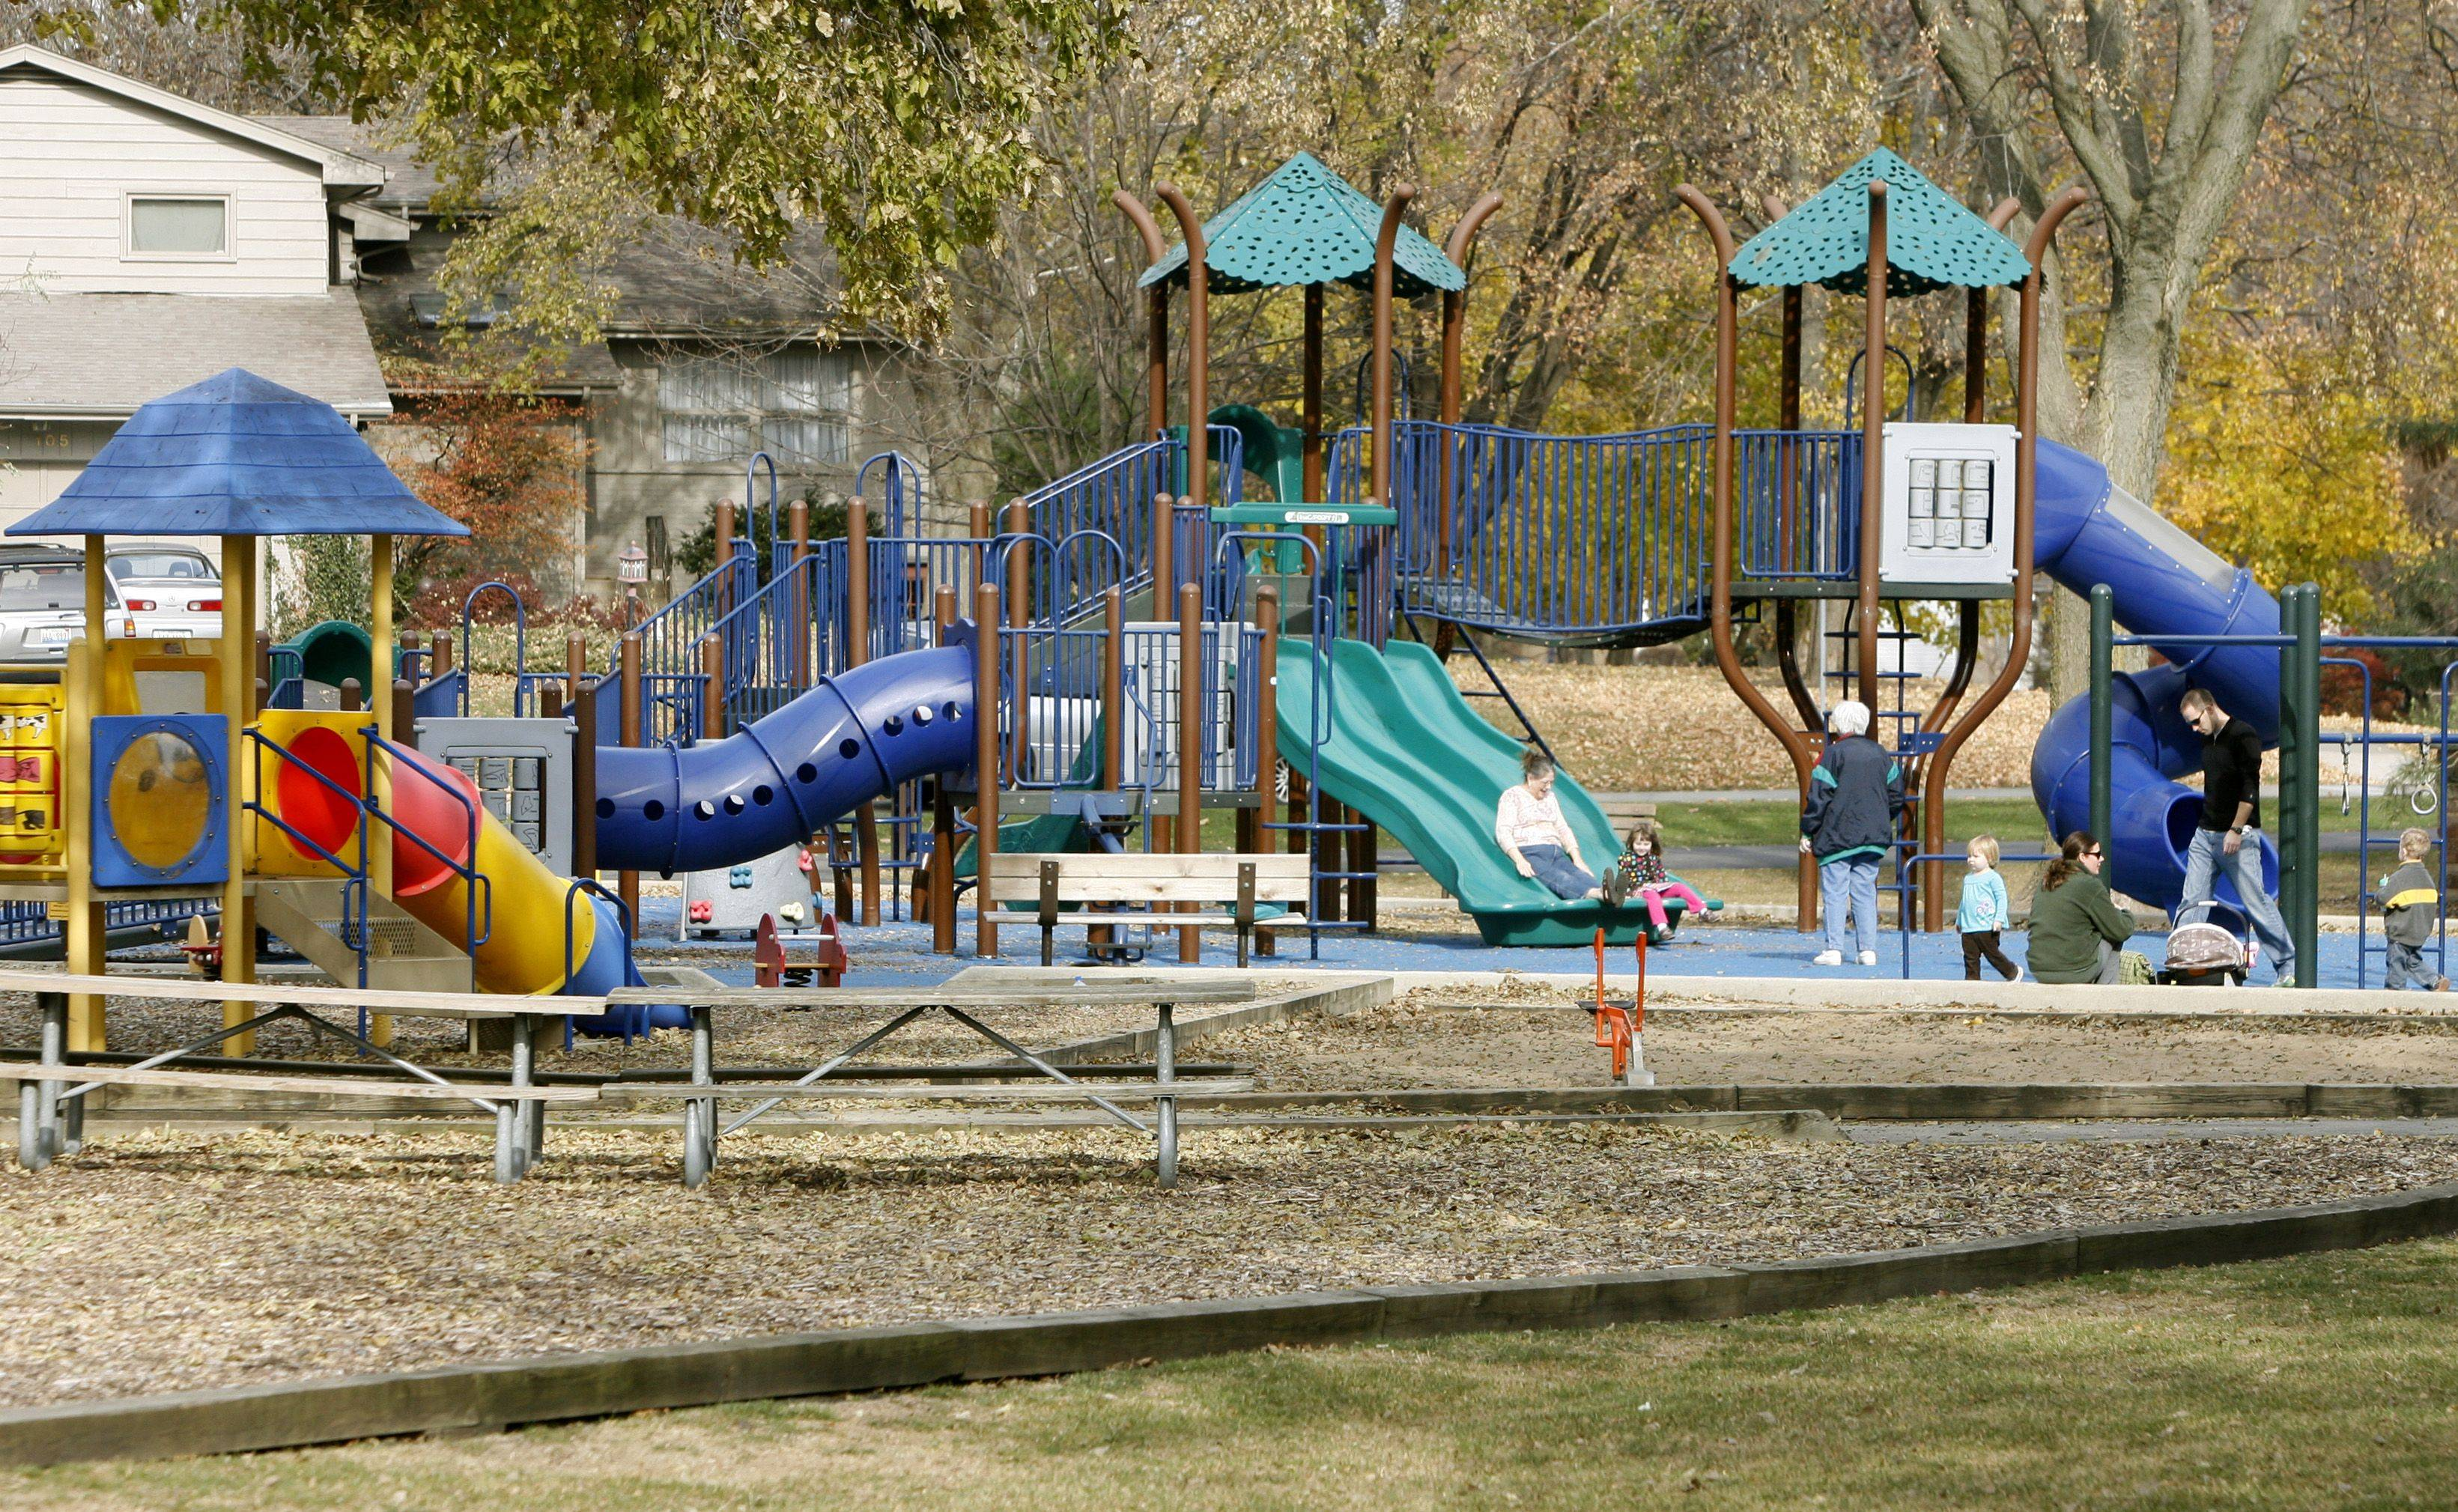 Wheaton's Kelly Park project still on schedule